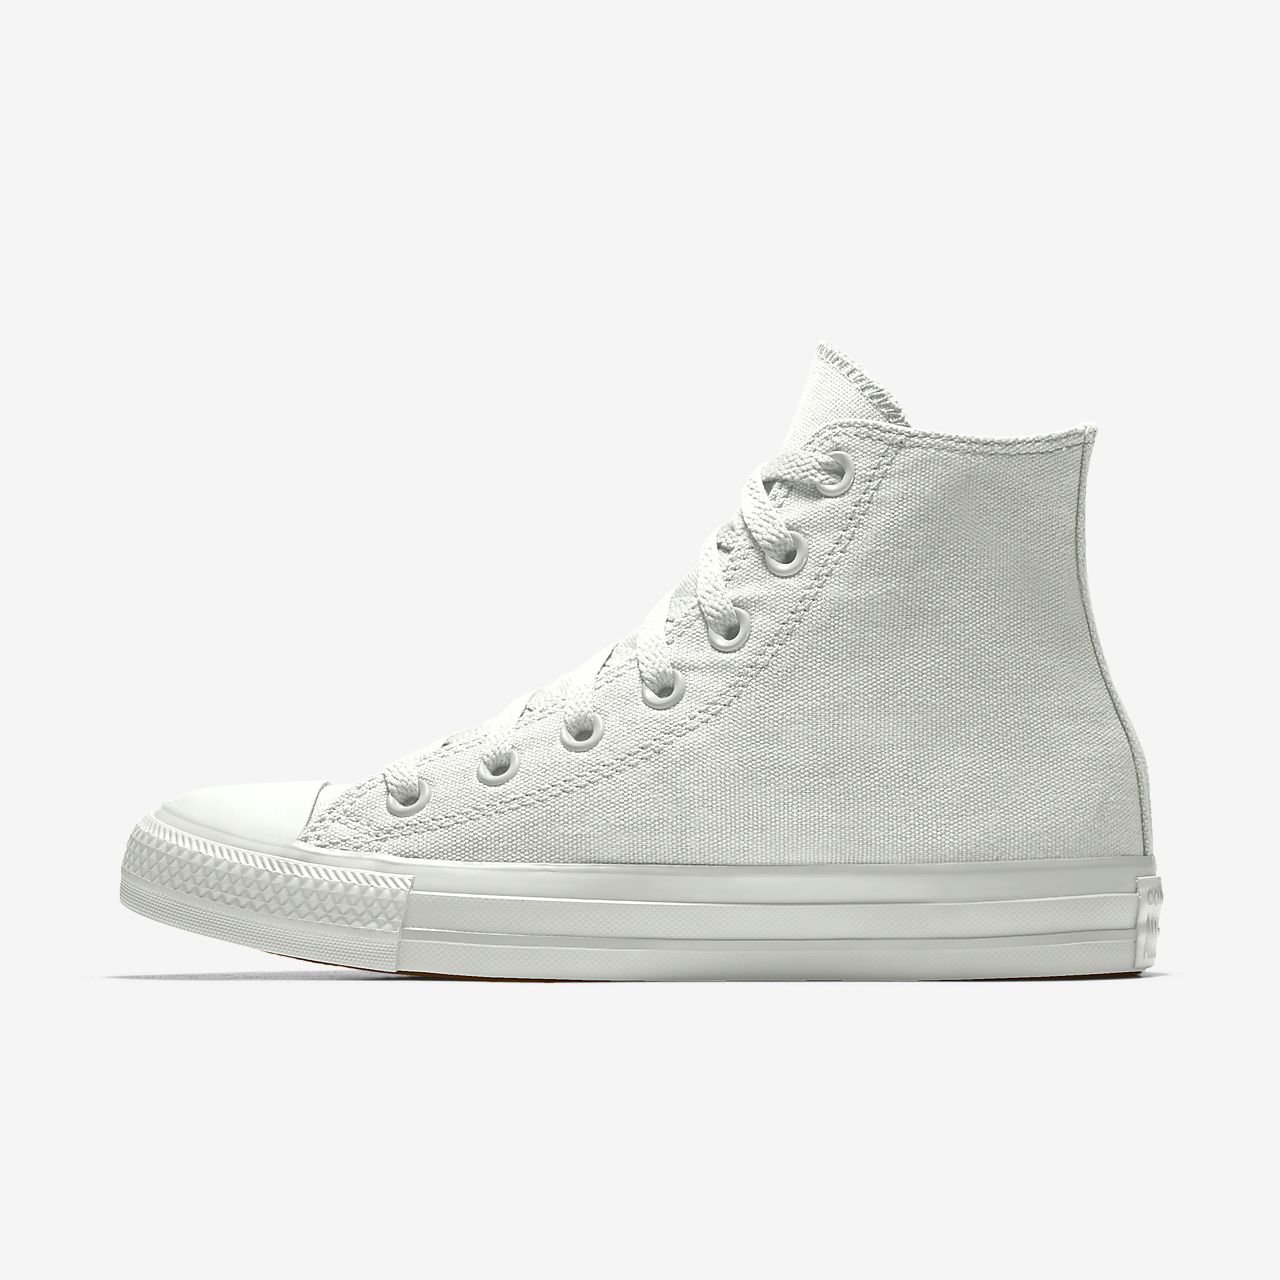 Converse Custom Chuck Taylor All Star High Top Shoe